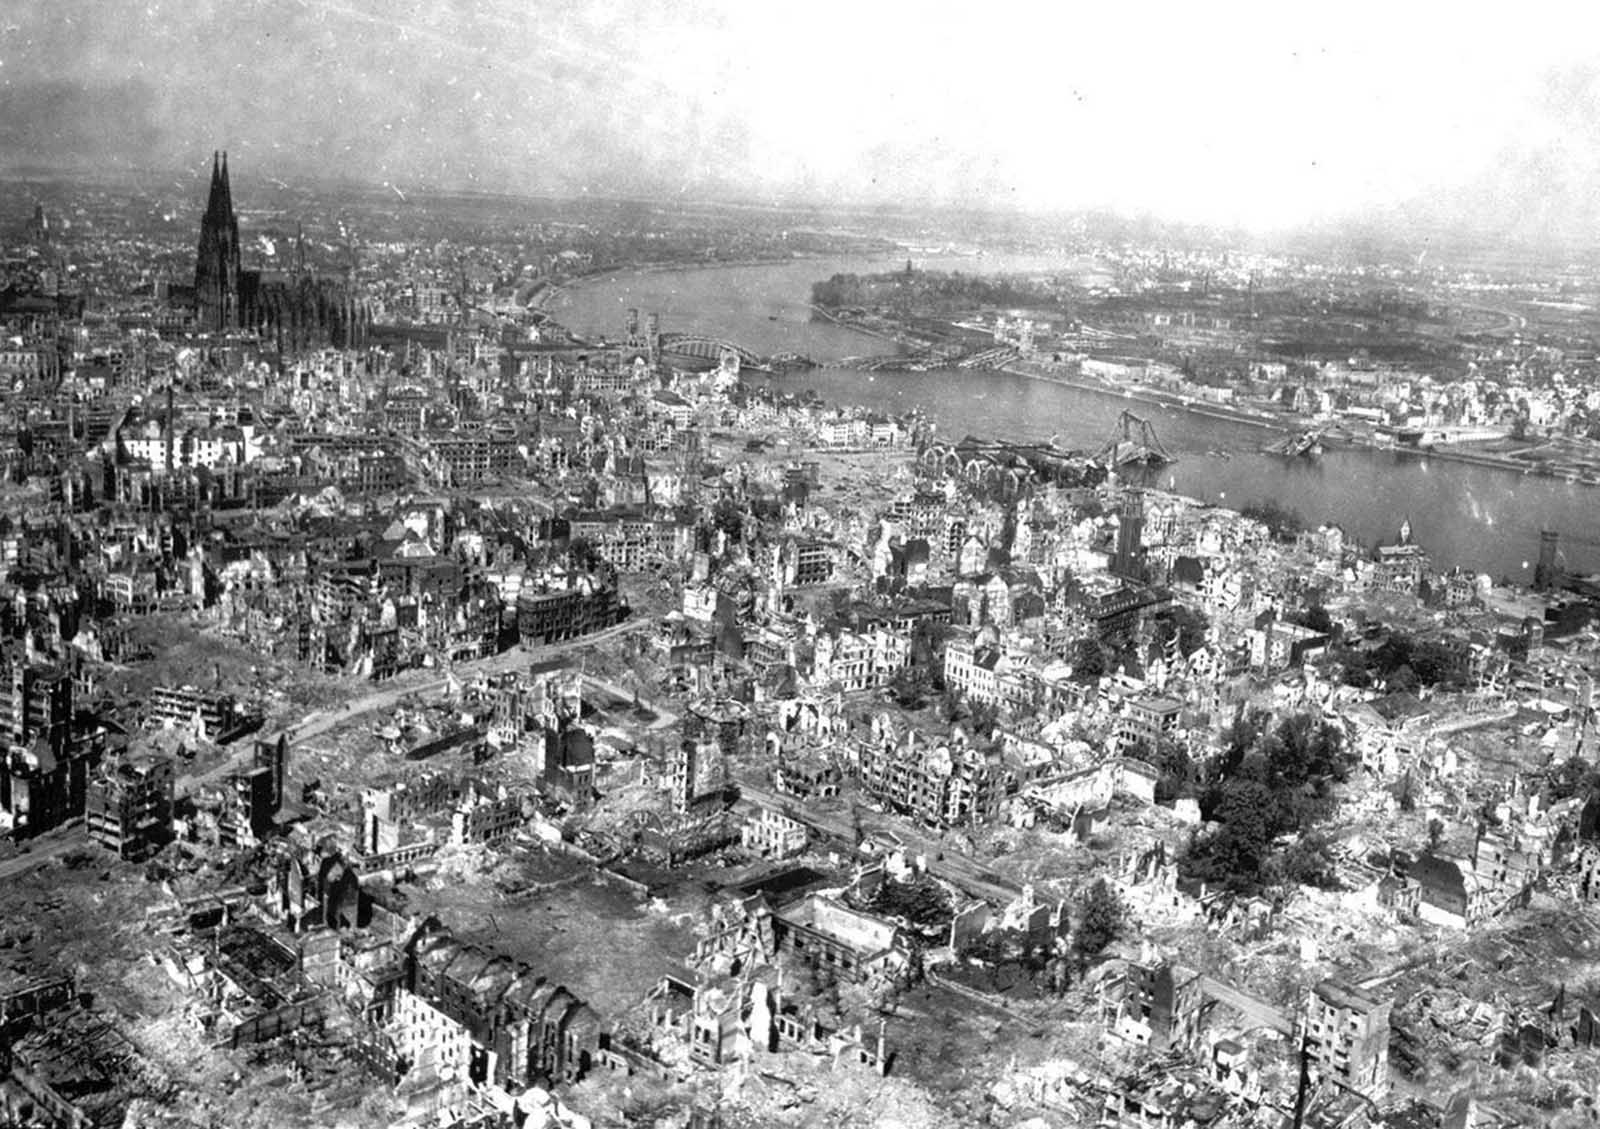 War-torn Cologne Cathedral stands out of the devastated area on the west bank of the Rhine, in Cologne, Germany, April 24, 1945. The railroad station and the Hohenzollern Bridge, at right, are completely destroyed after three years of Allied air raids.